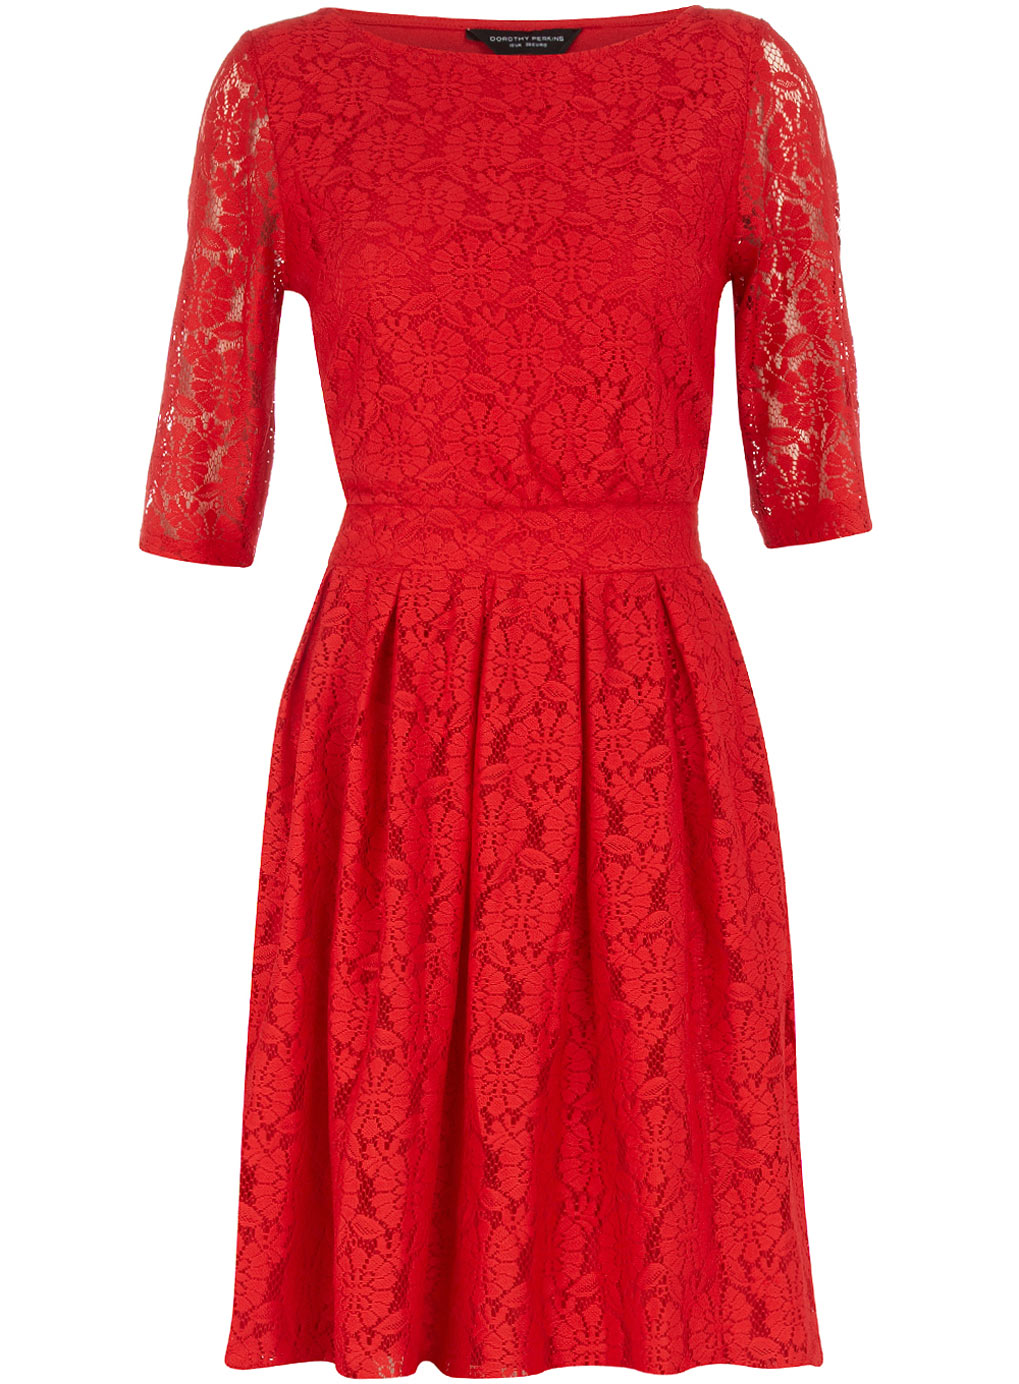 Dorothy Perkins red lace dress